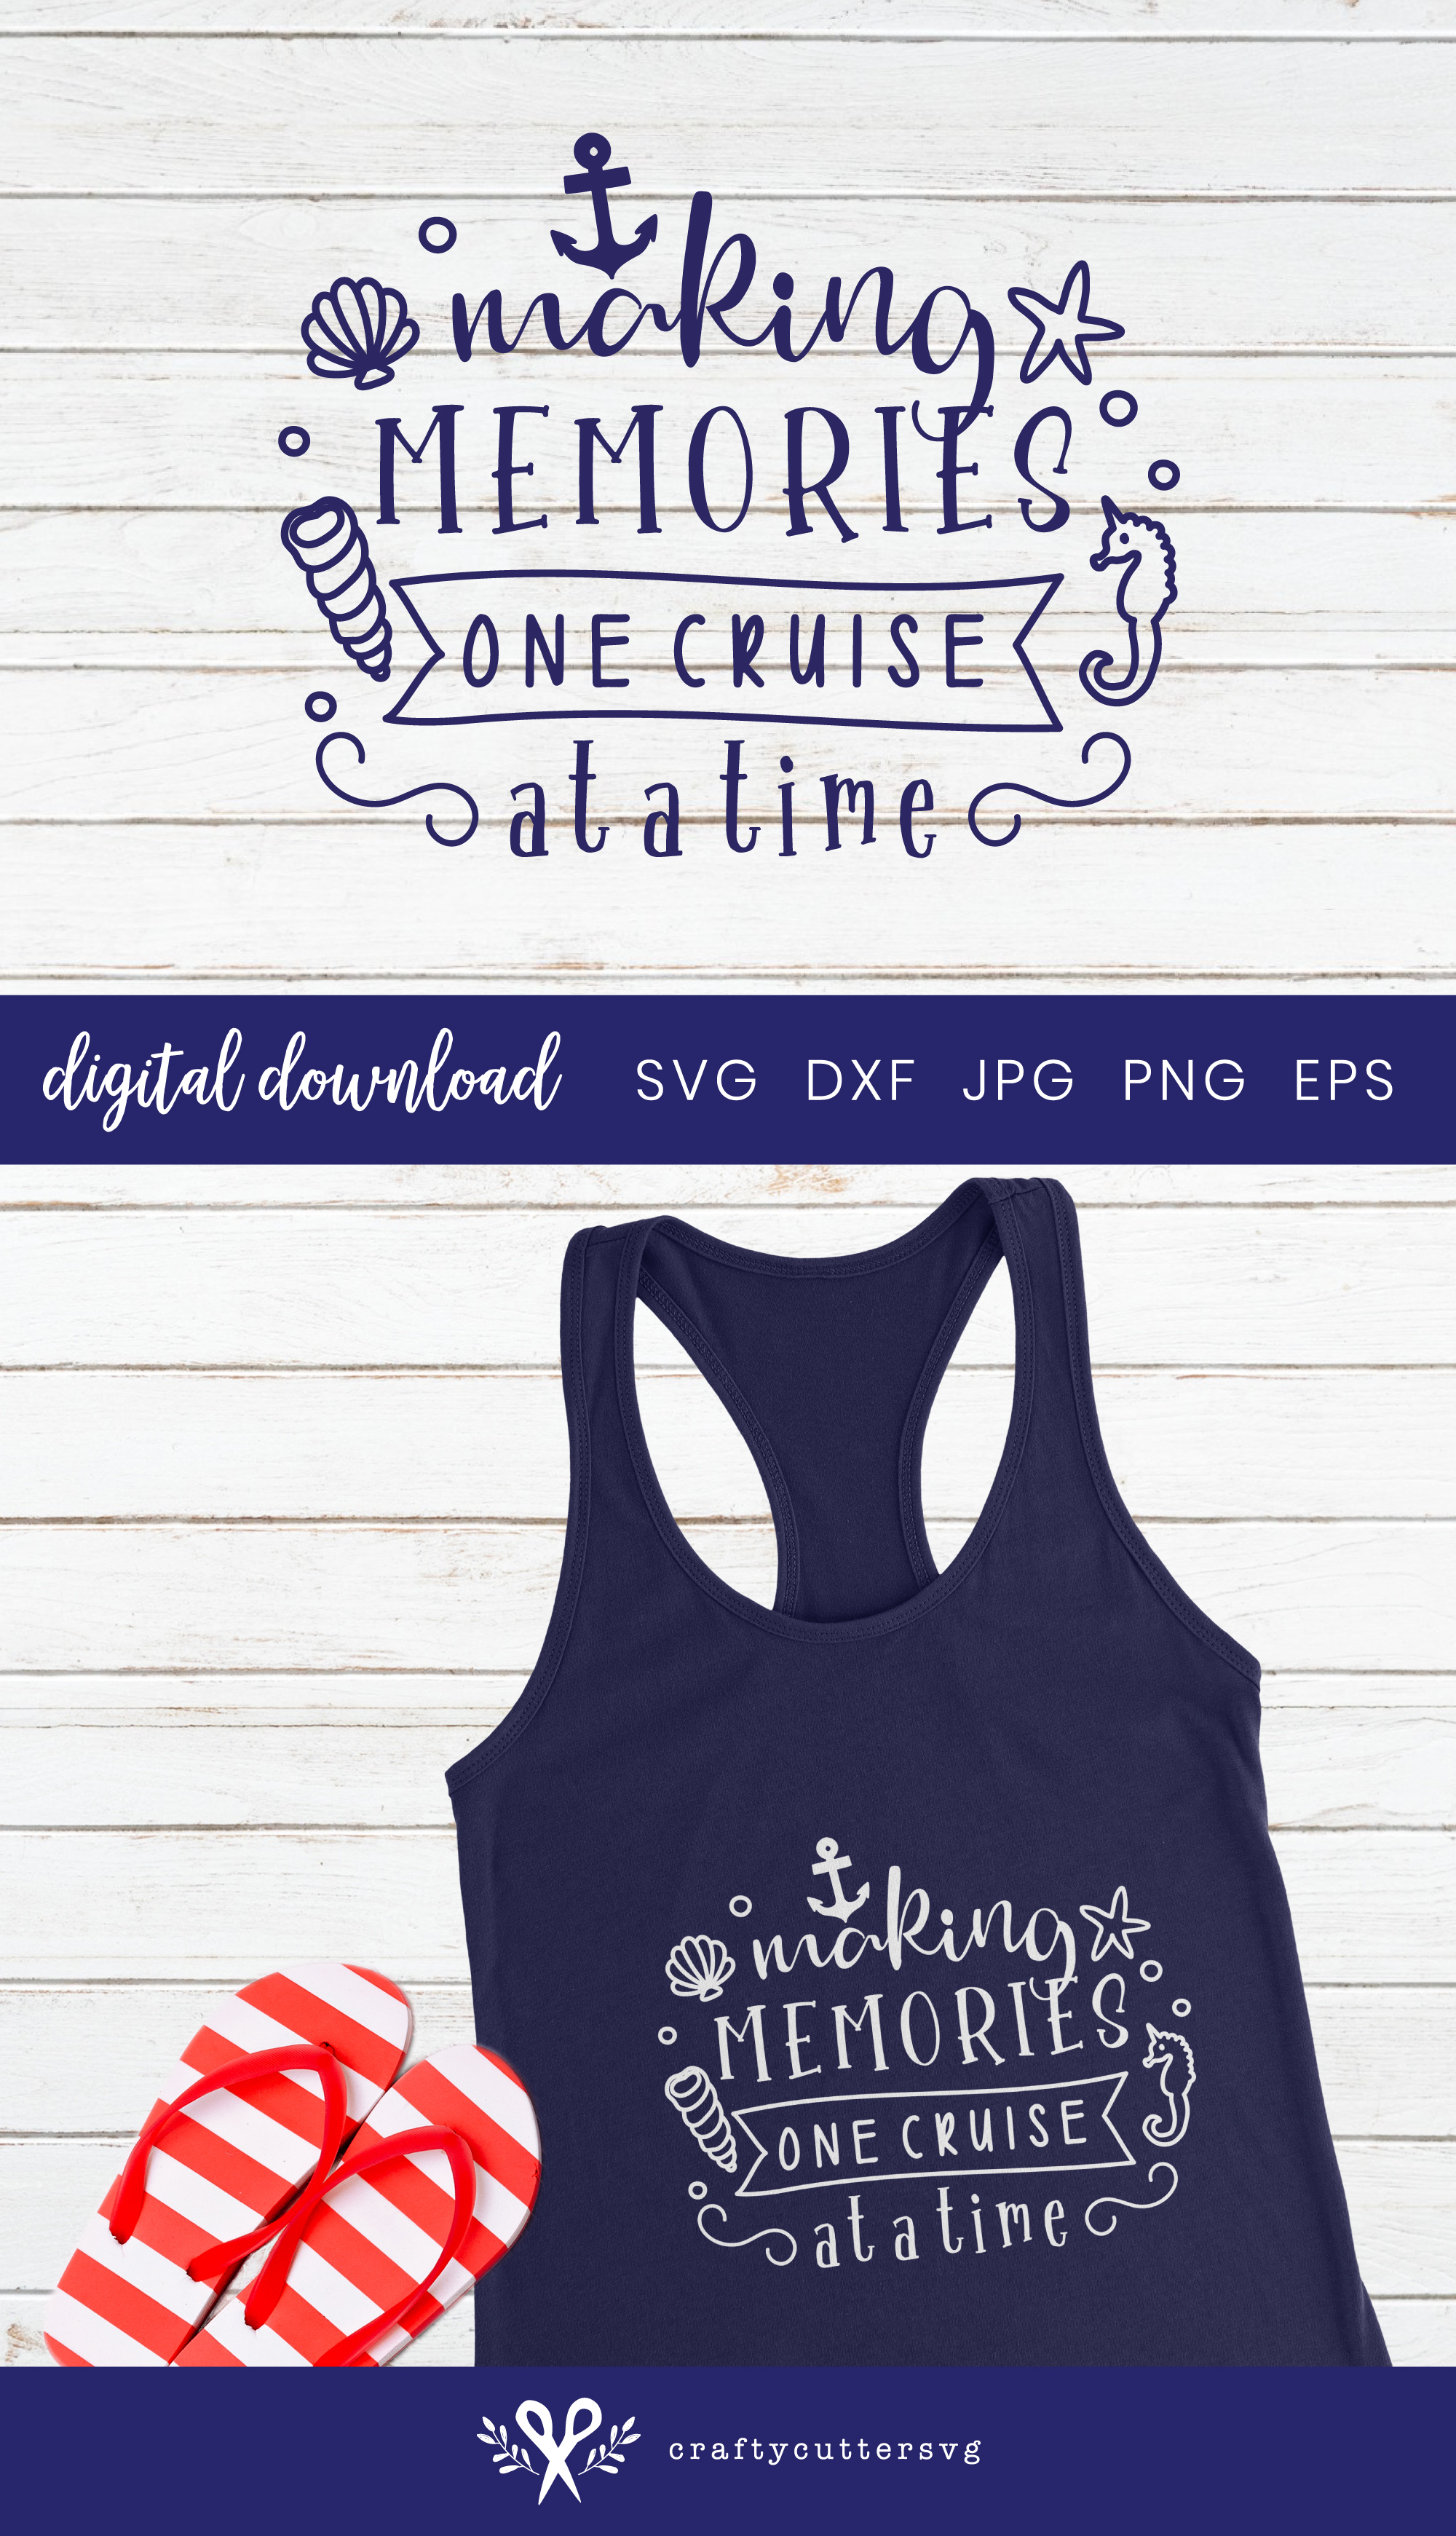 Making memories one cruise at a time Svg Cut File Clipart example image 3